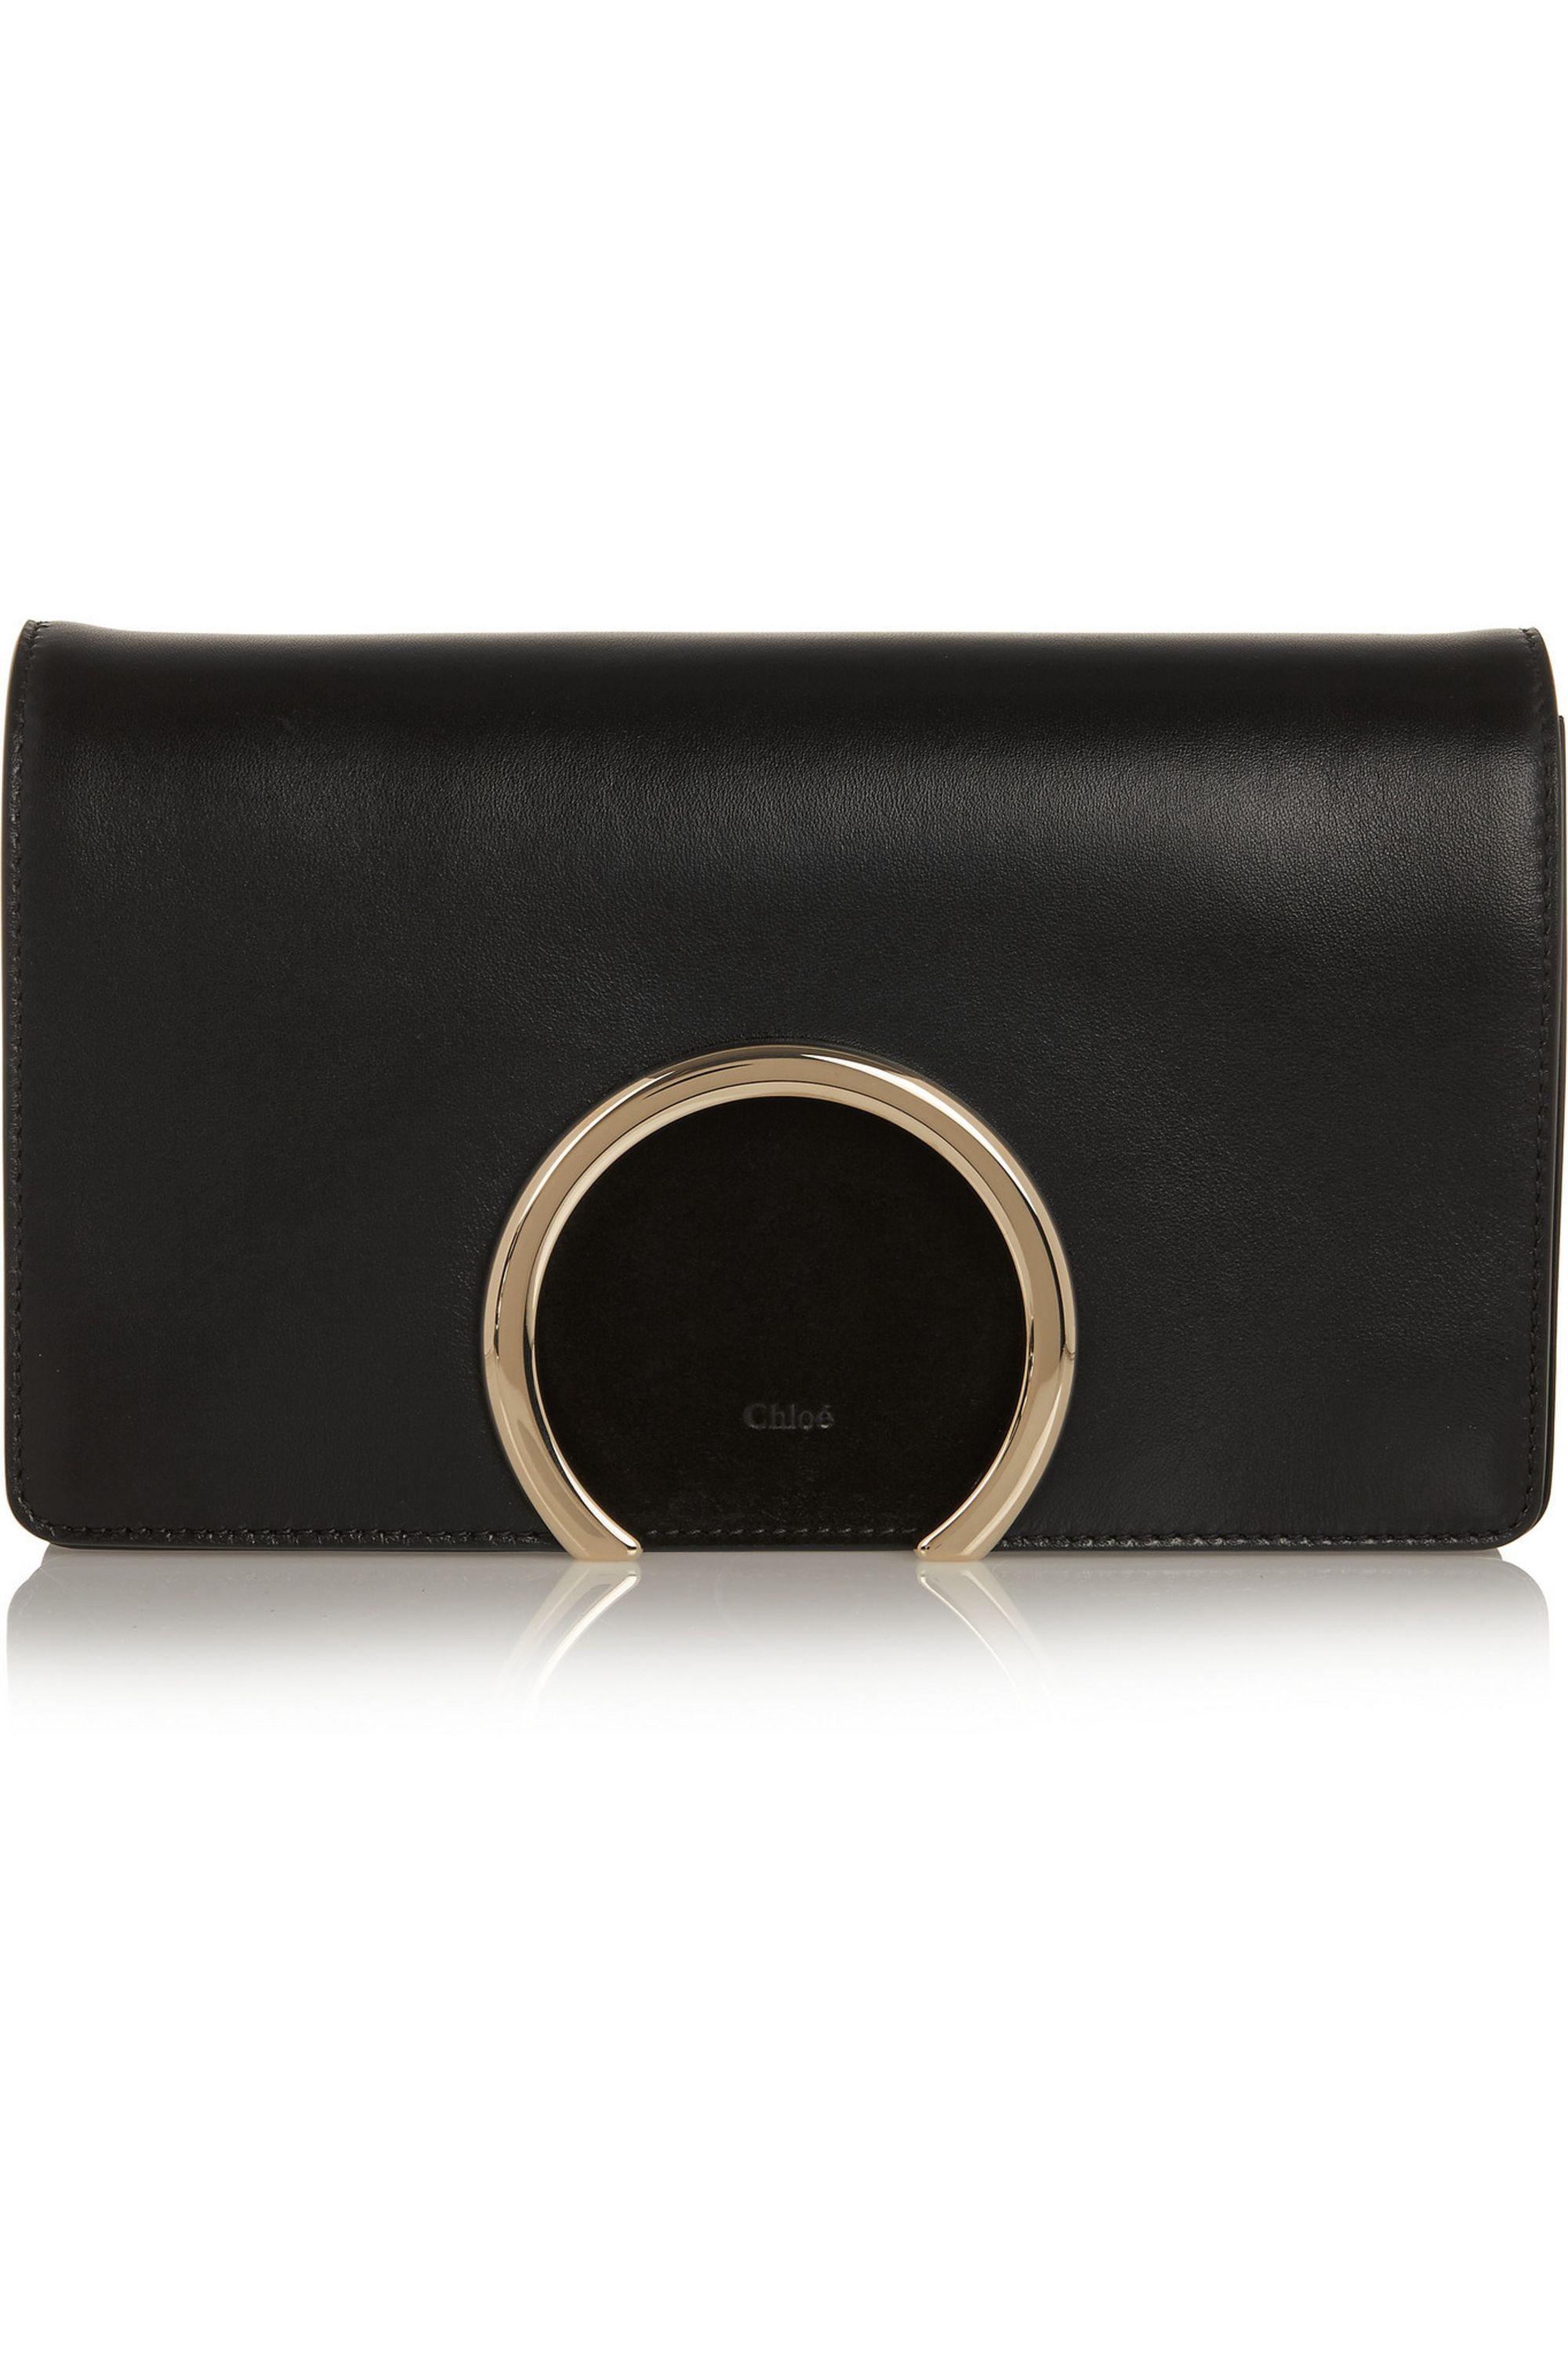 Chloé Gabrielle leather and suede clutch